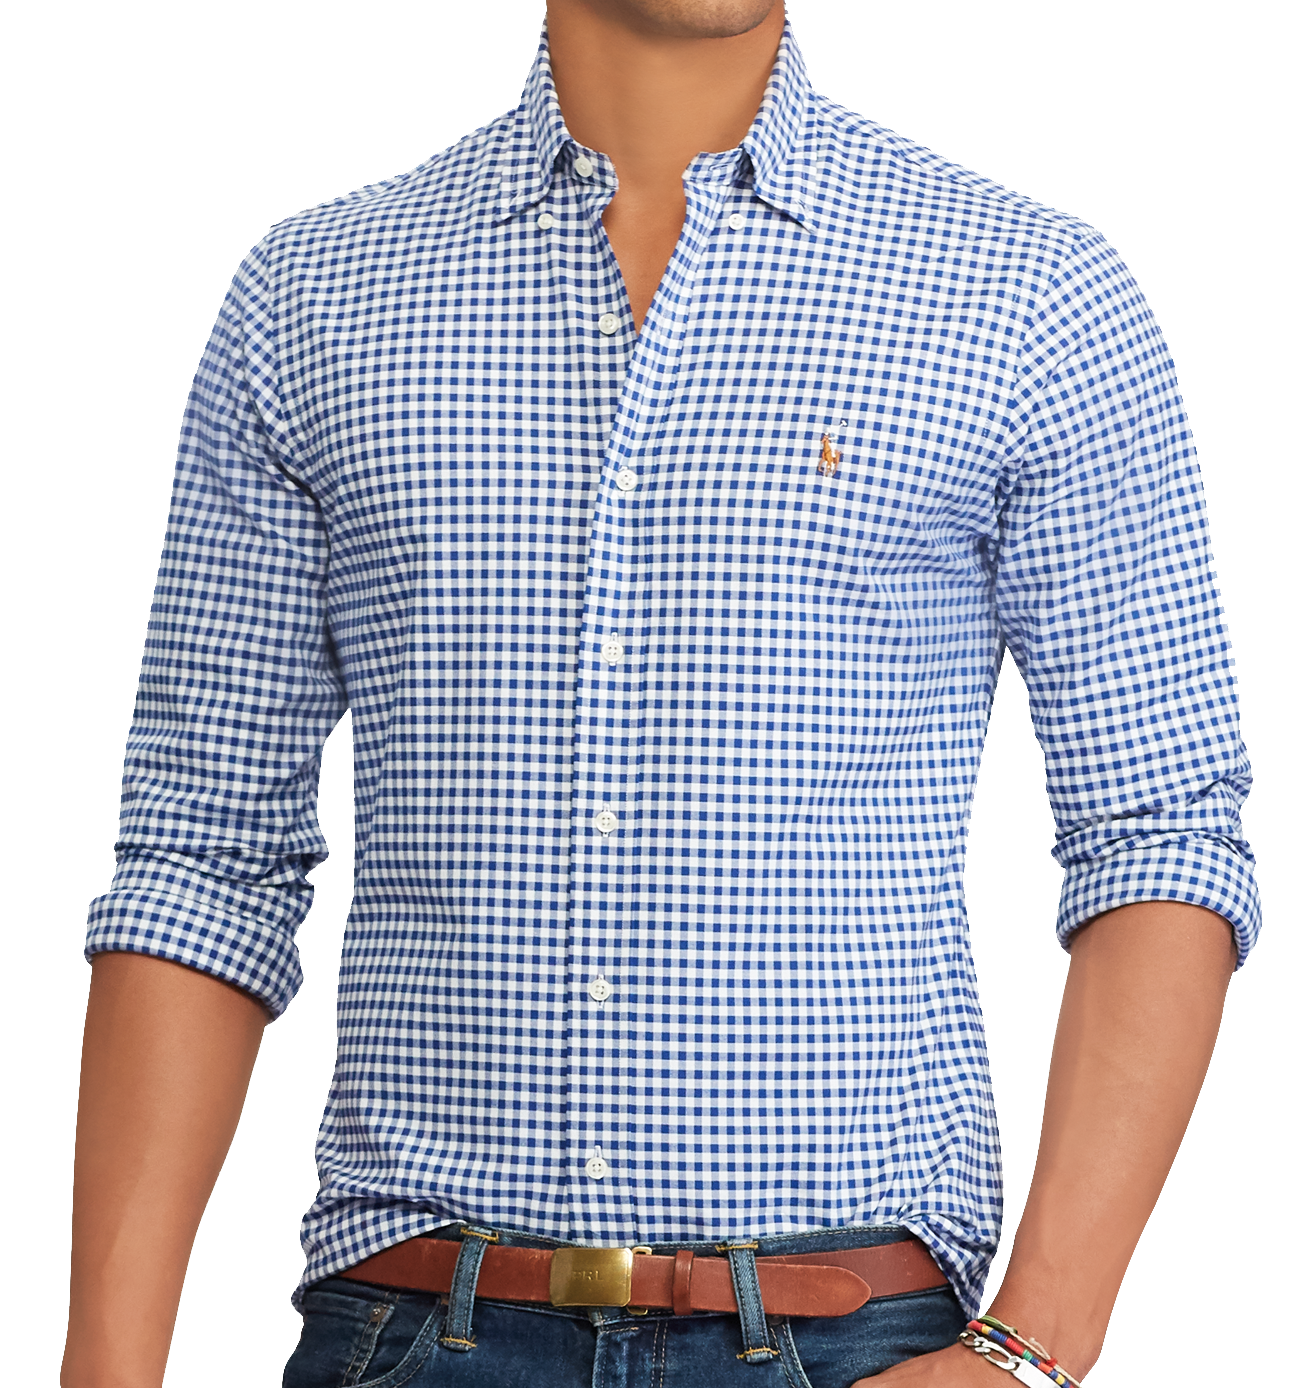 ef534d37 Polo Ralph Lauren Mens Slim Fit Gingham Oxford Shirt, BSR Royal/White, L  3069-6 - $74.24